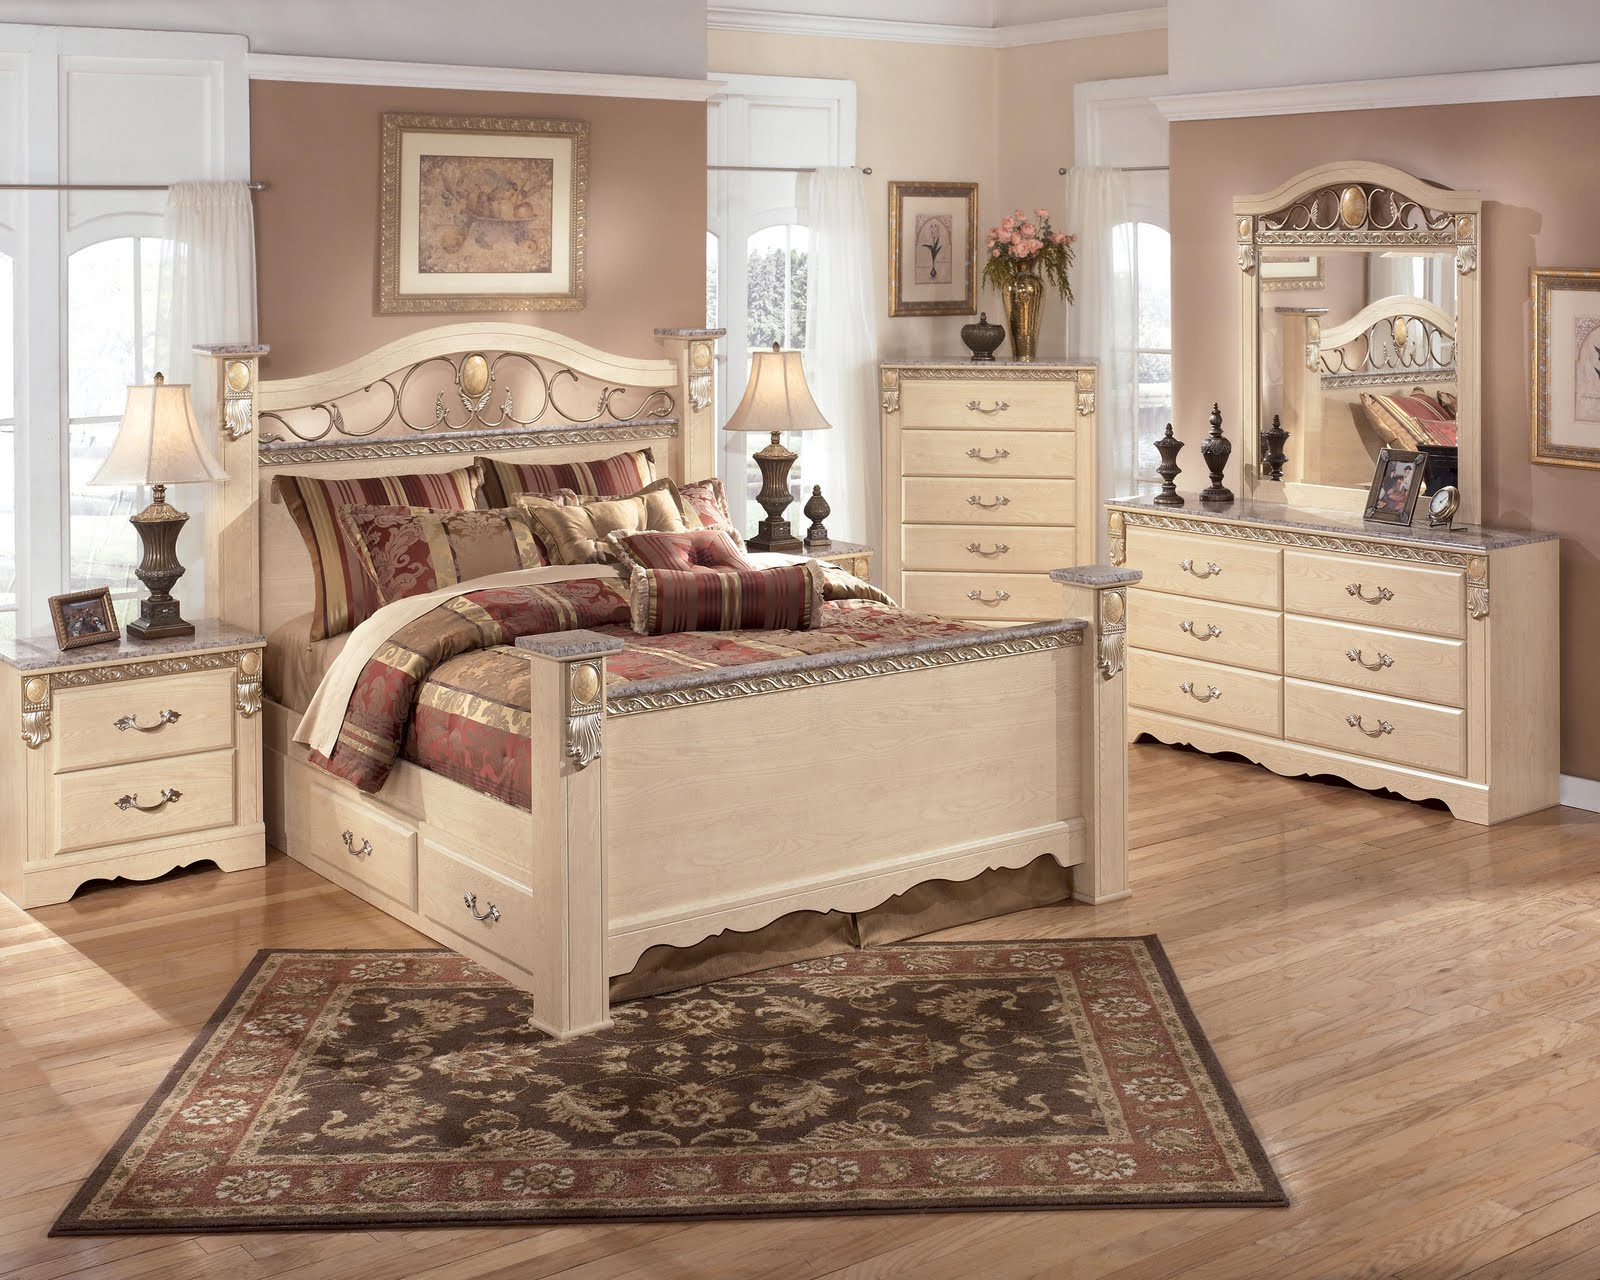 About Us | Royal Furniture Outlet